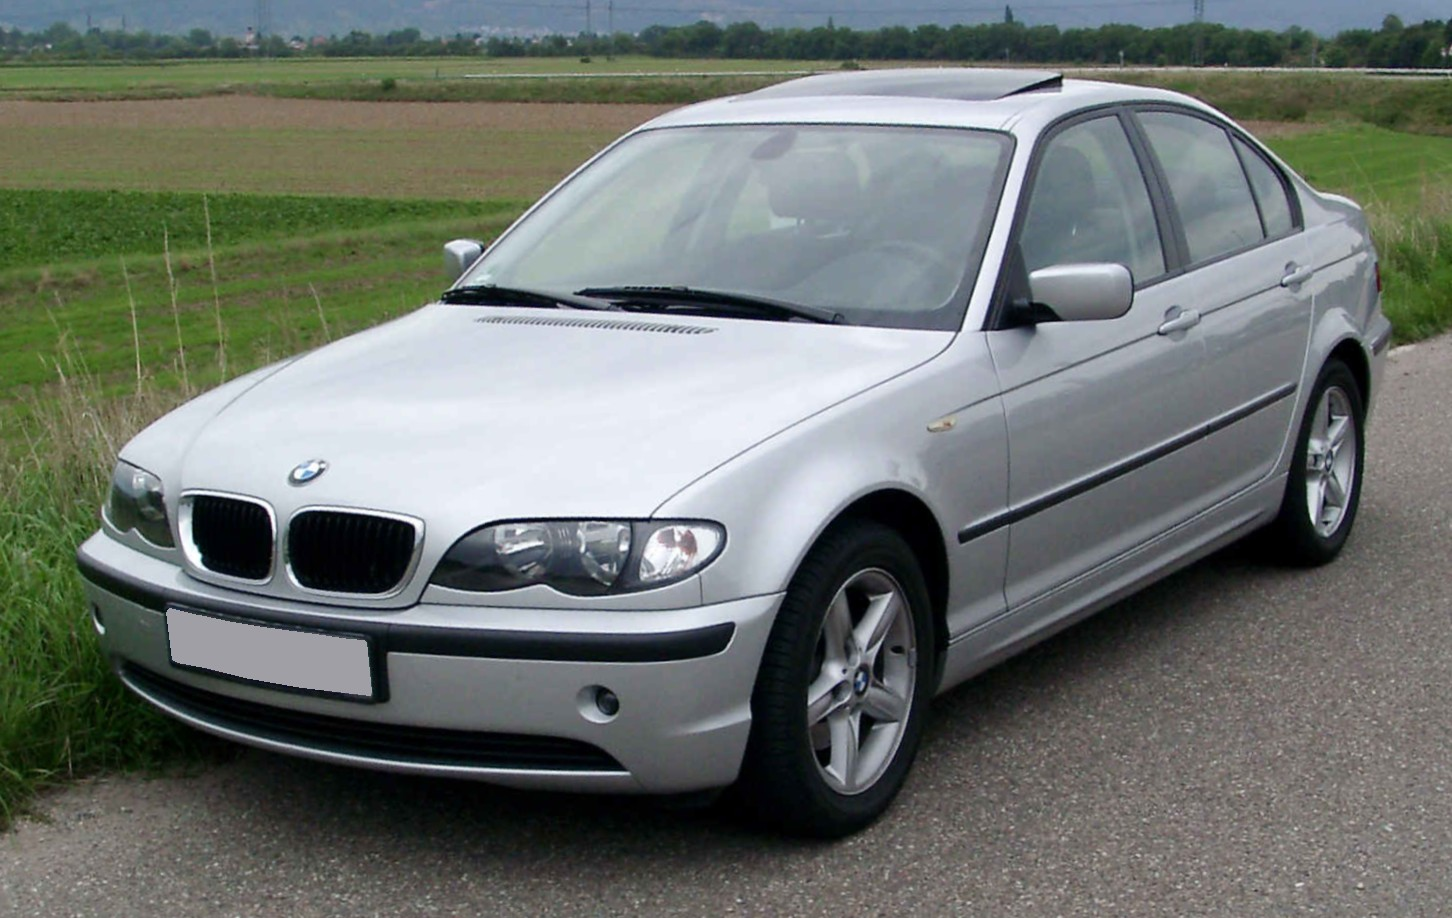 BMW 325Xi 2001 photo - 5